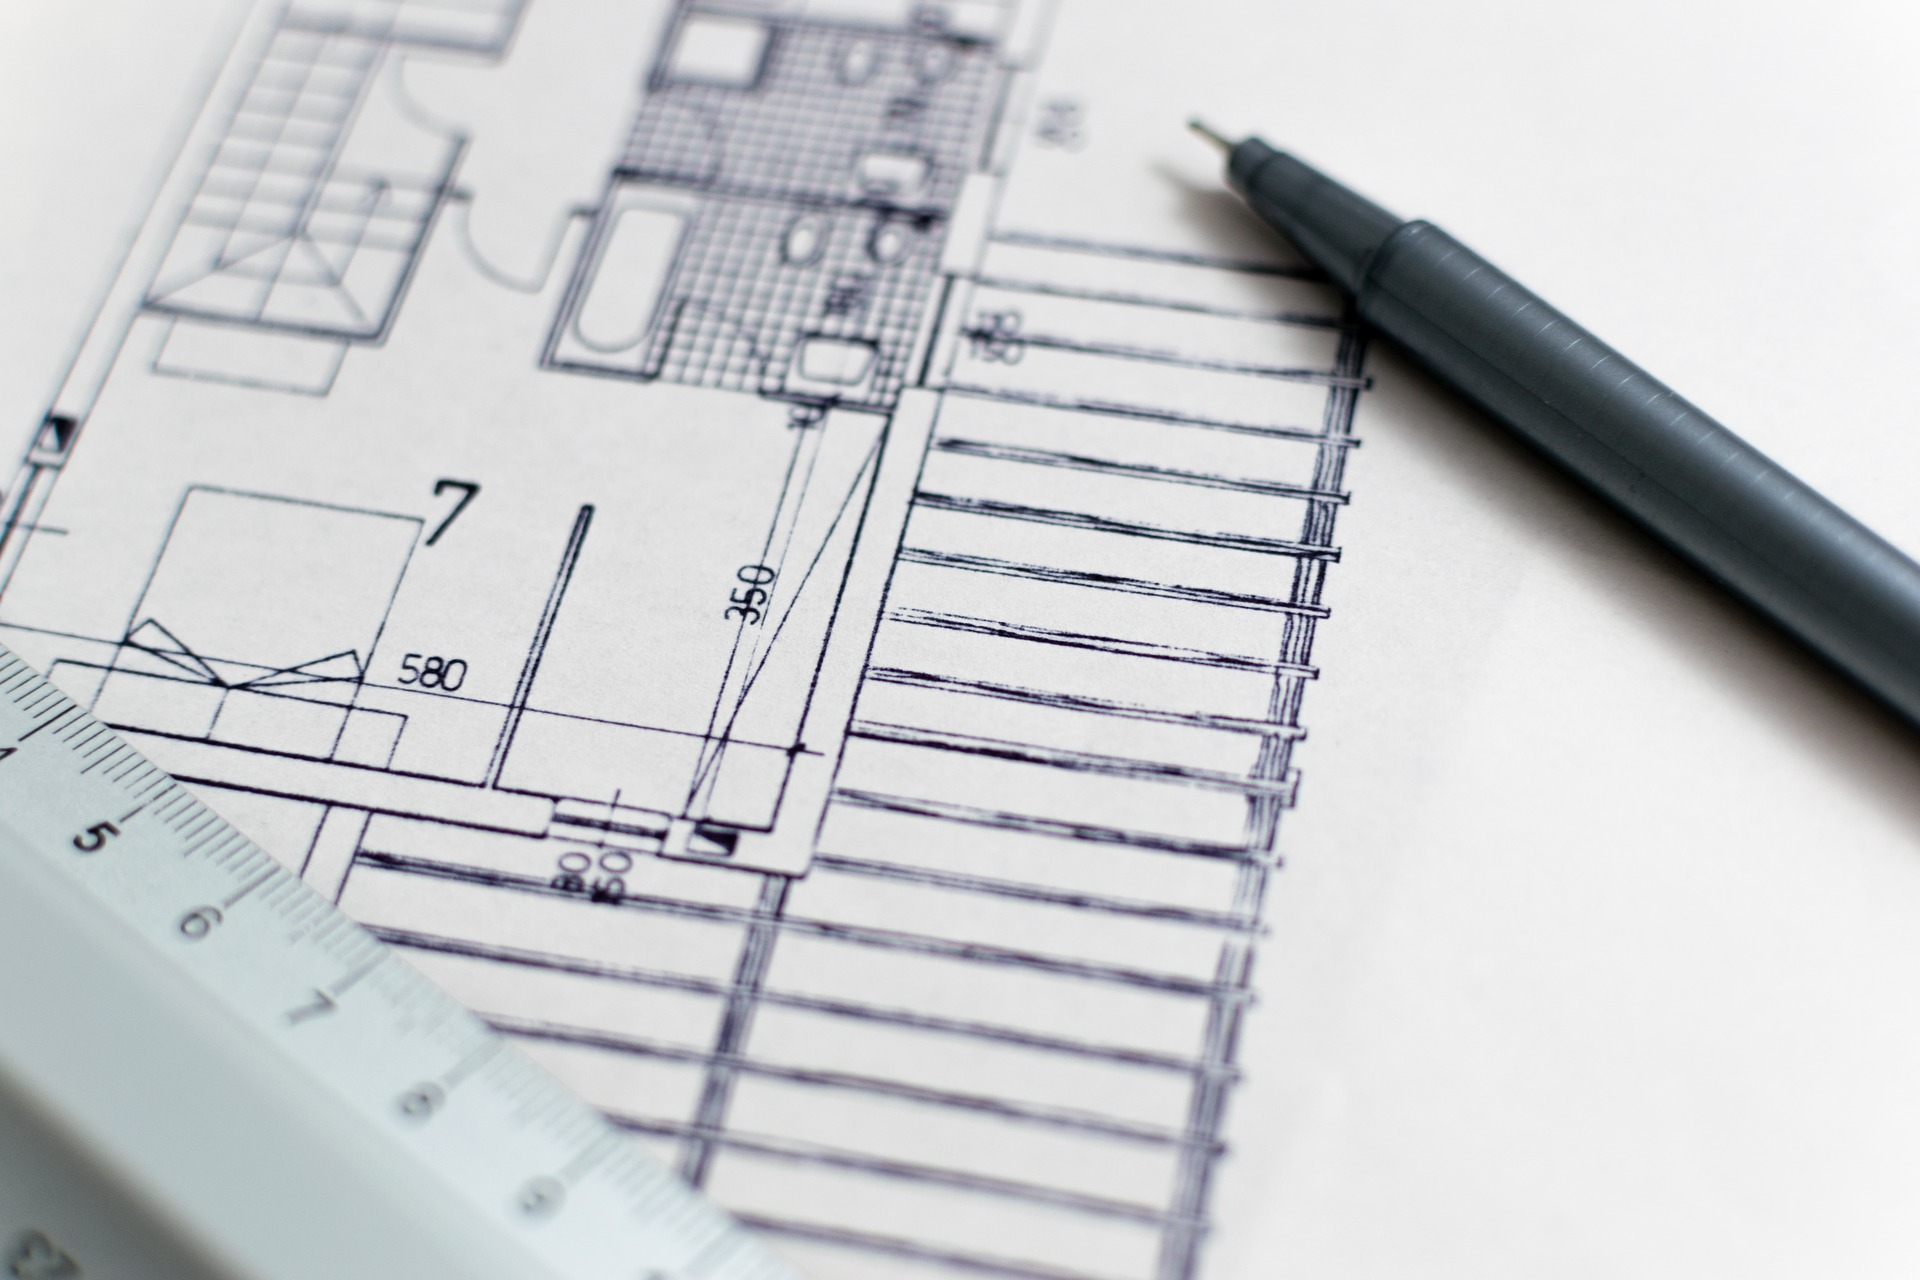 Design Build Residential & Commercial